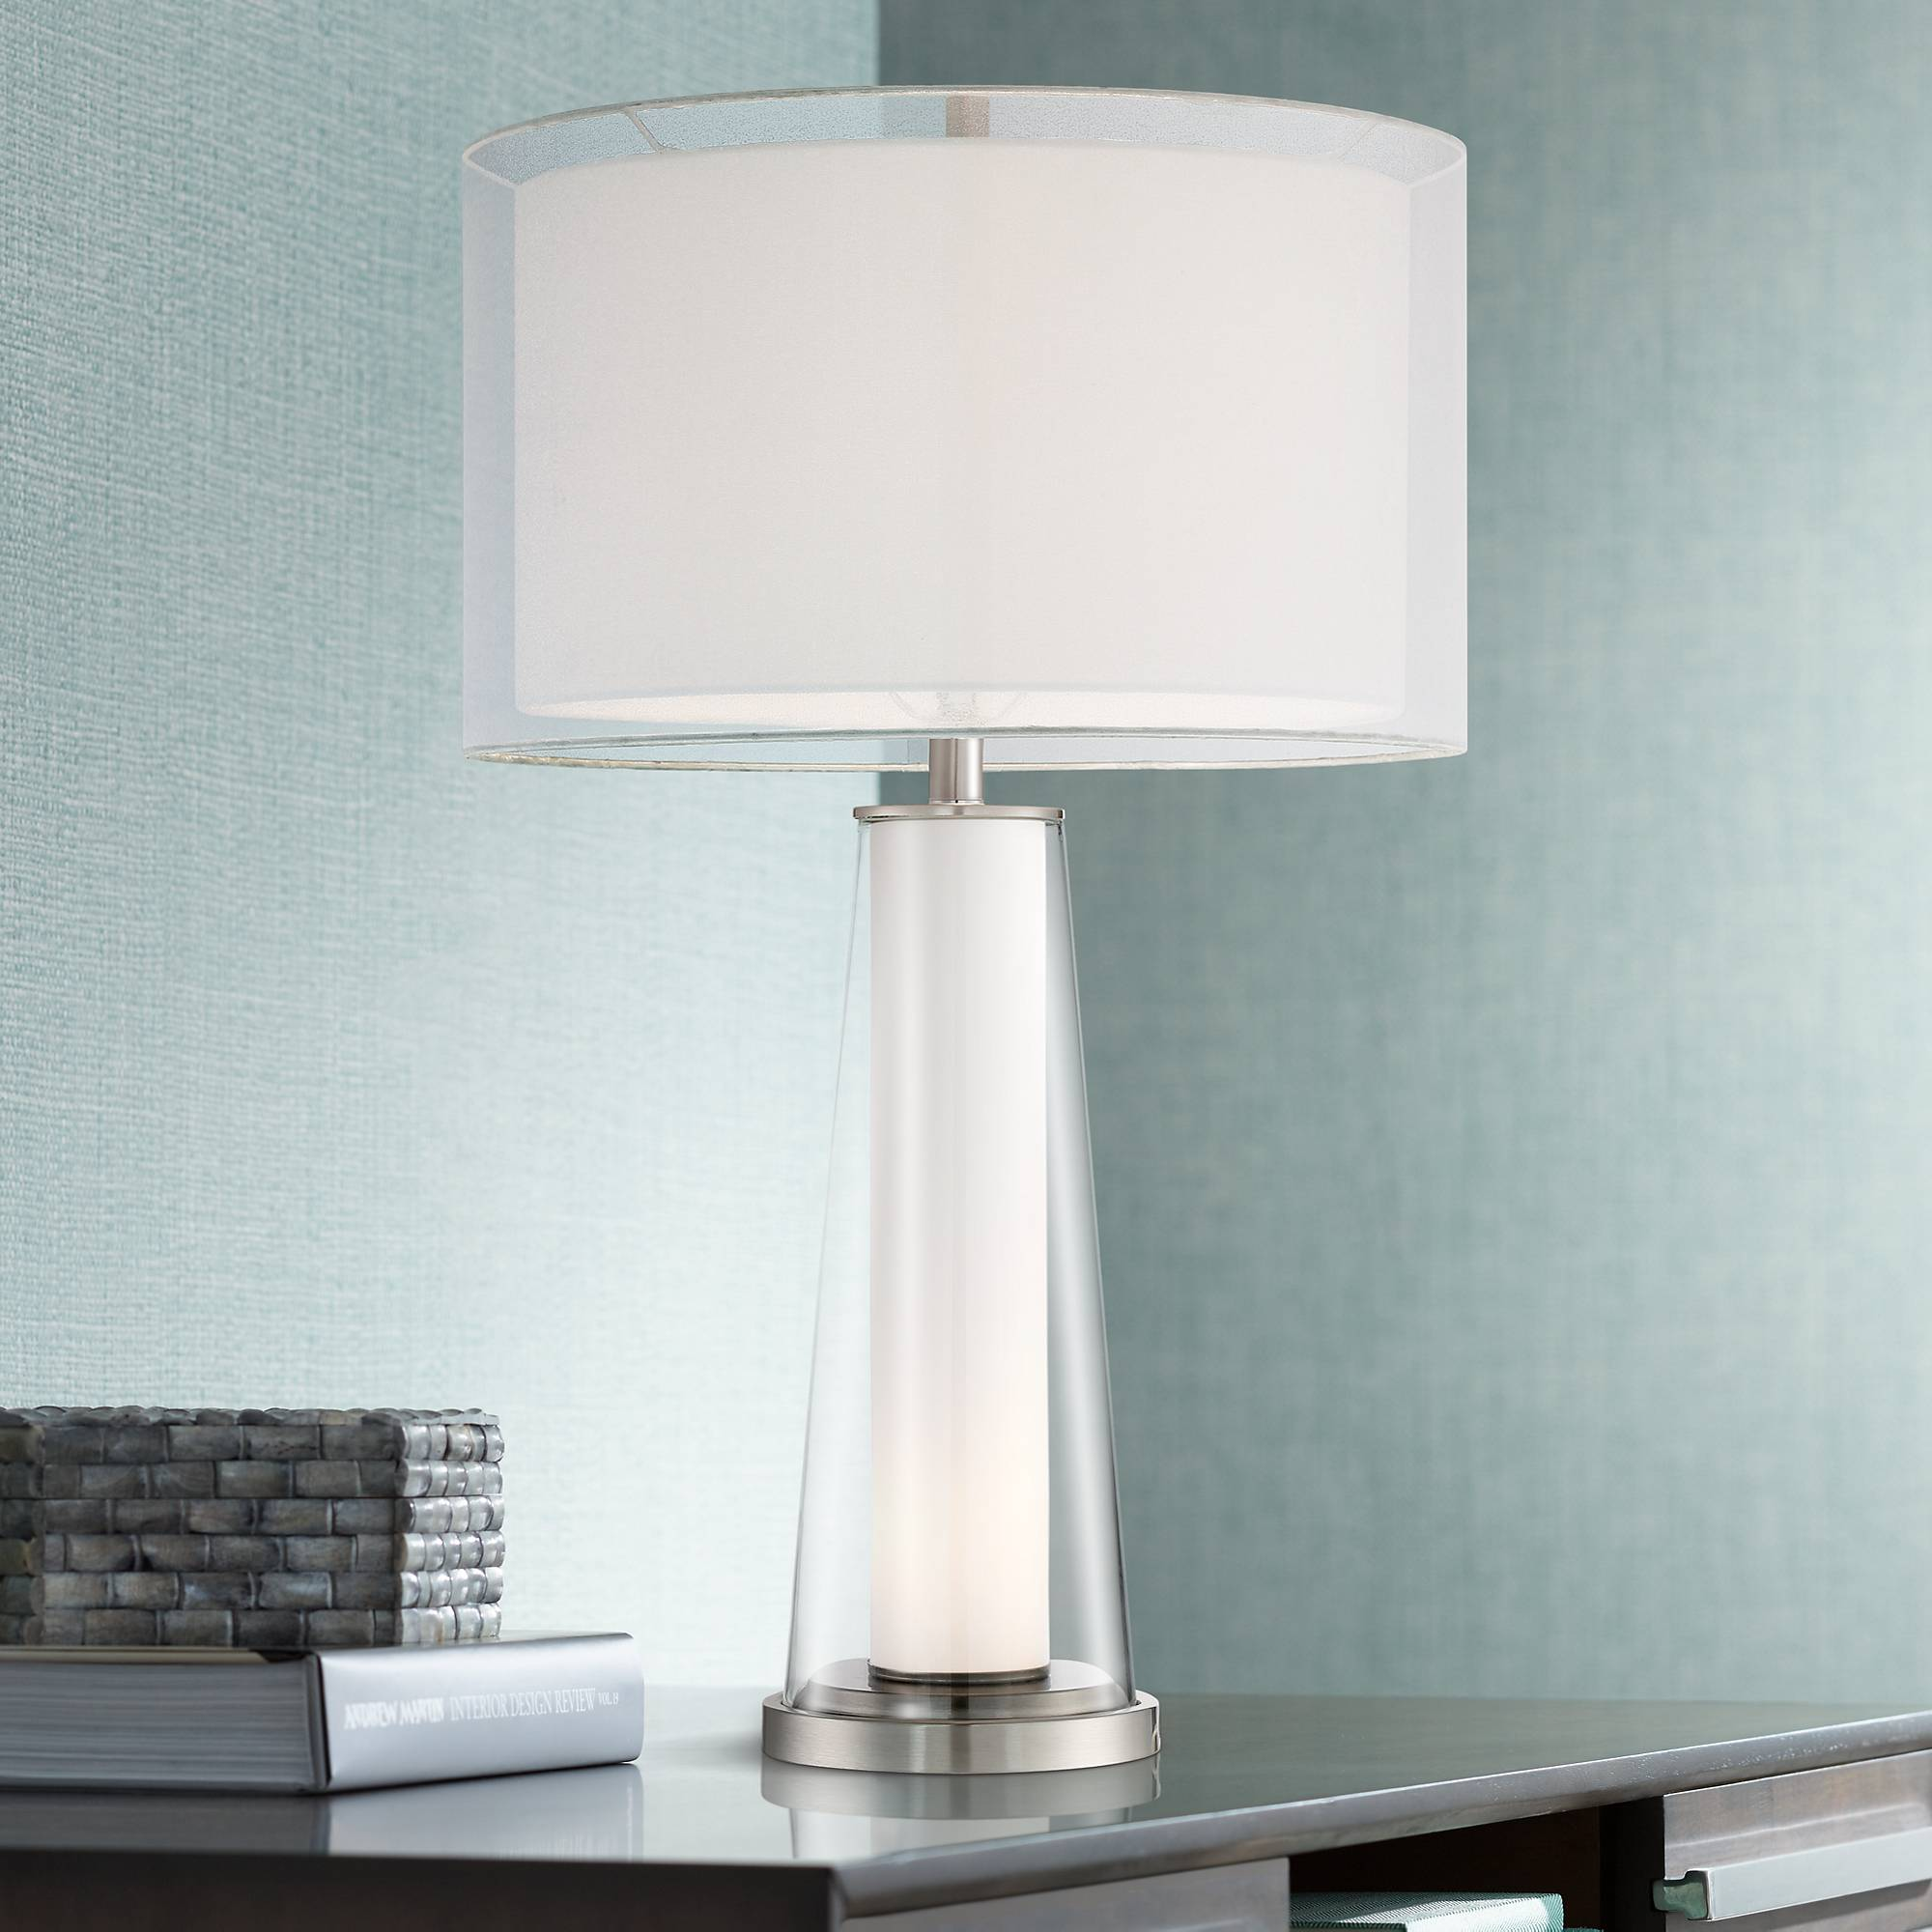 Modern Table Lamp With Nightlight Clear Frosted Glass For Living